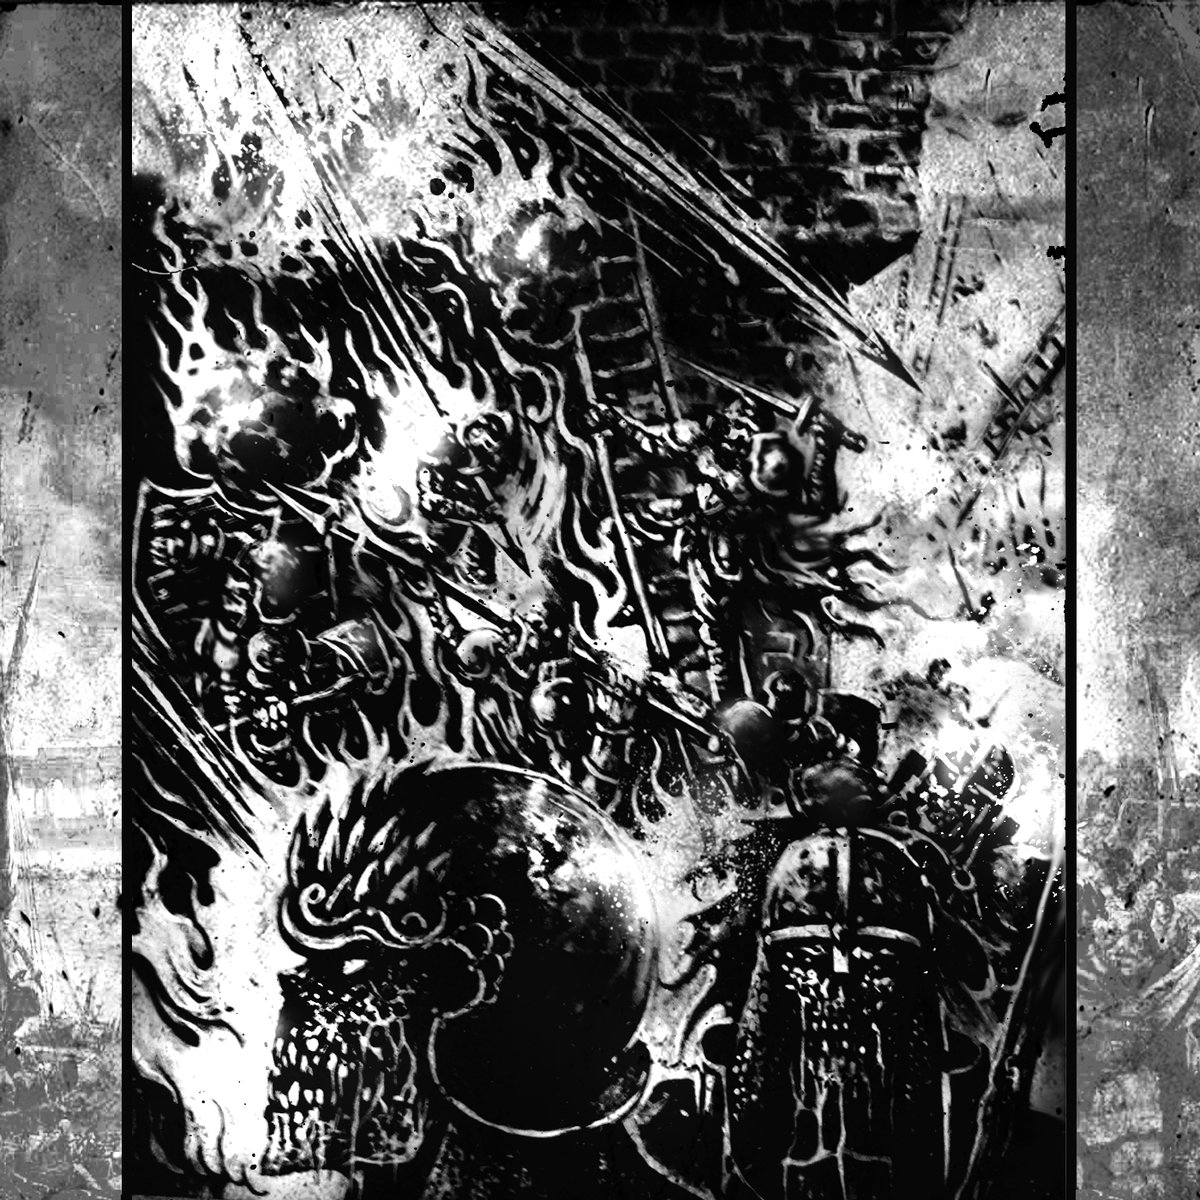 Popiel - Undying Insurmountable Chaos - Full Demo Stream + Release Information.